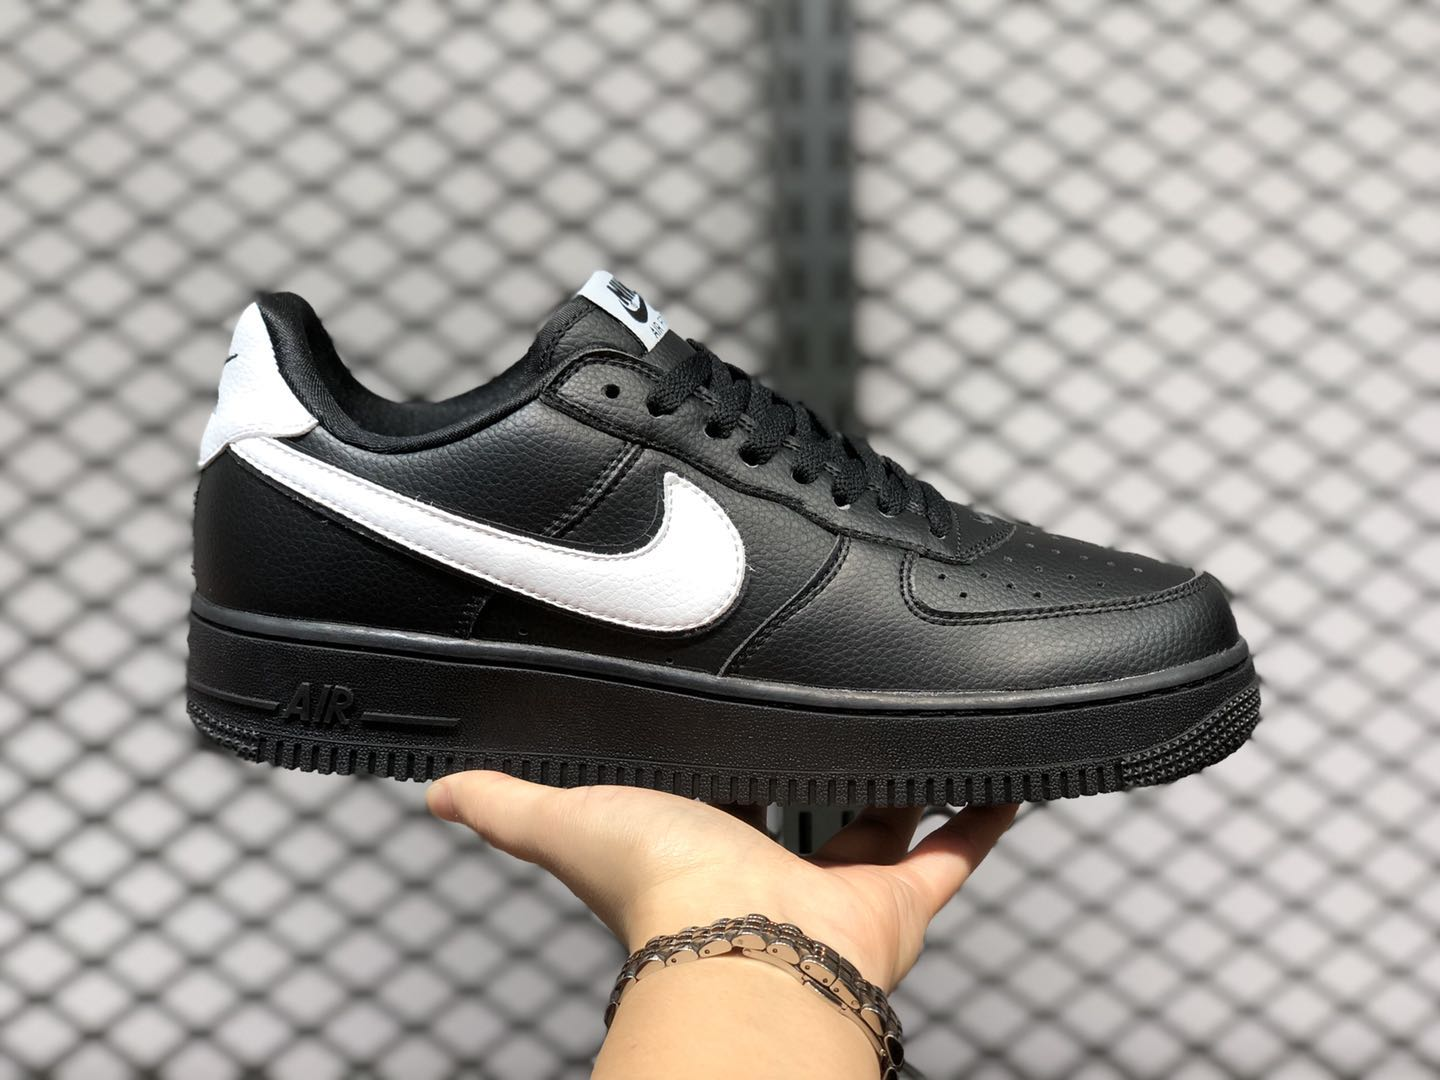 Nike Air Force 1 Low Black/White Shoes